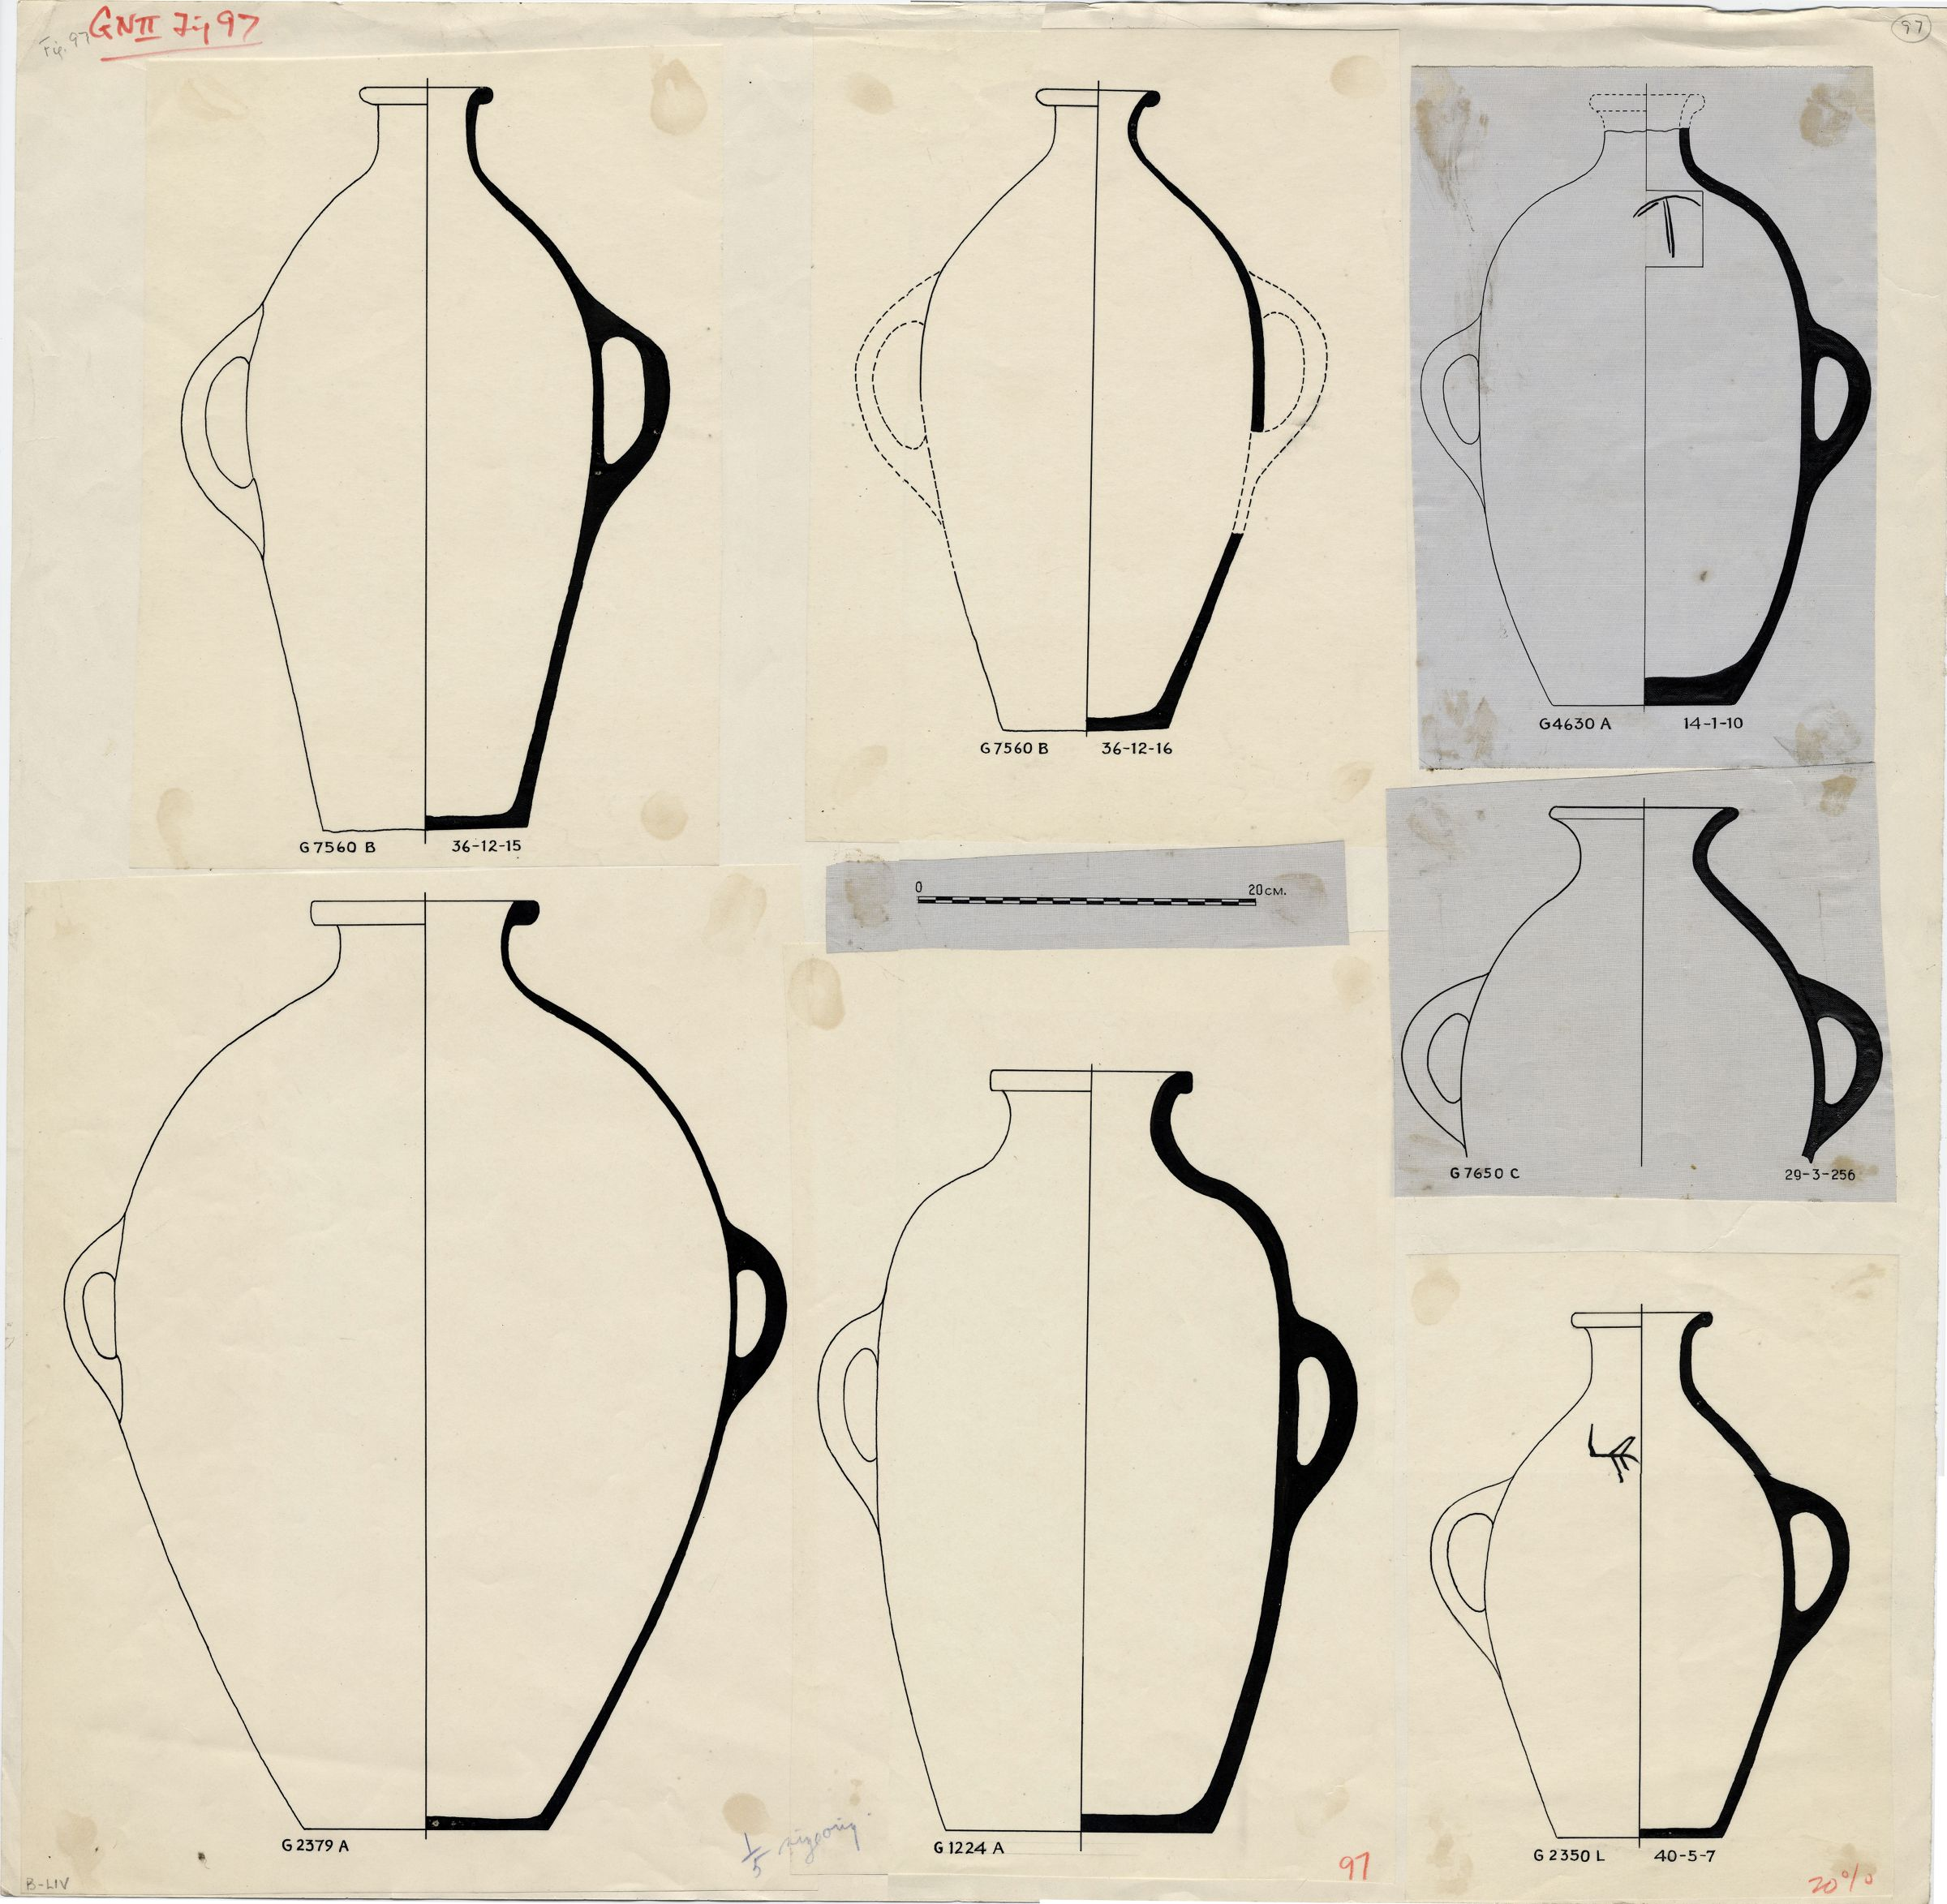 Drawings: Pottery, jars with two handles from G 1224, G 2379, G 4630, G 5290, G 7560, G 7650